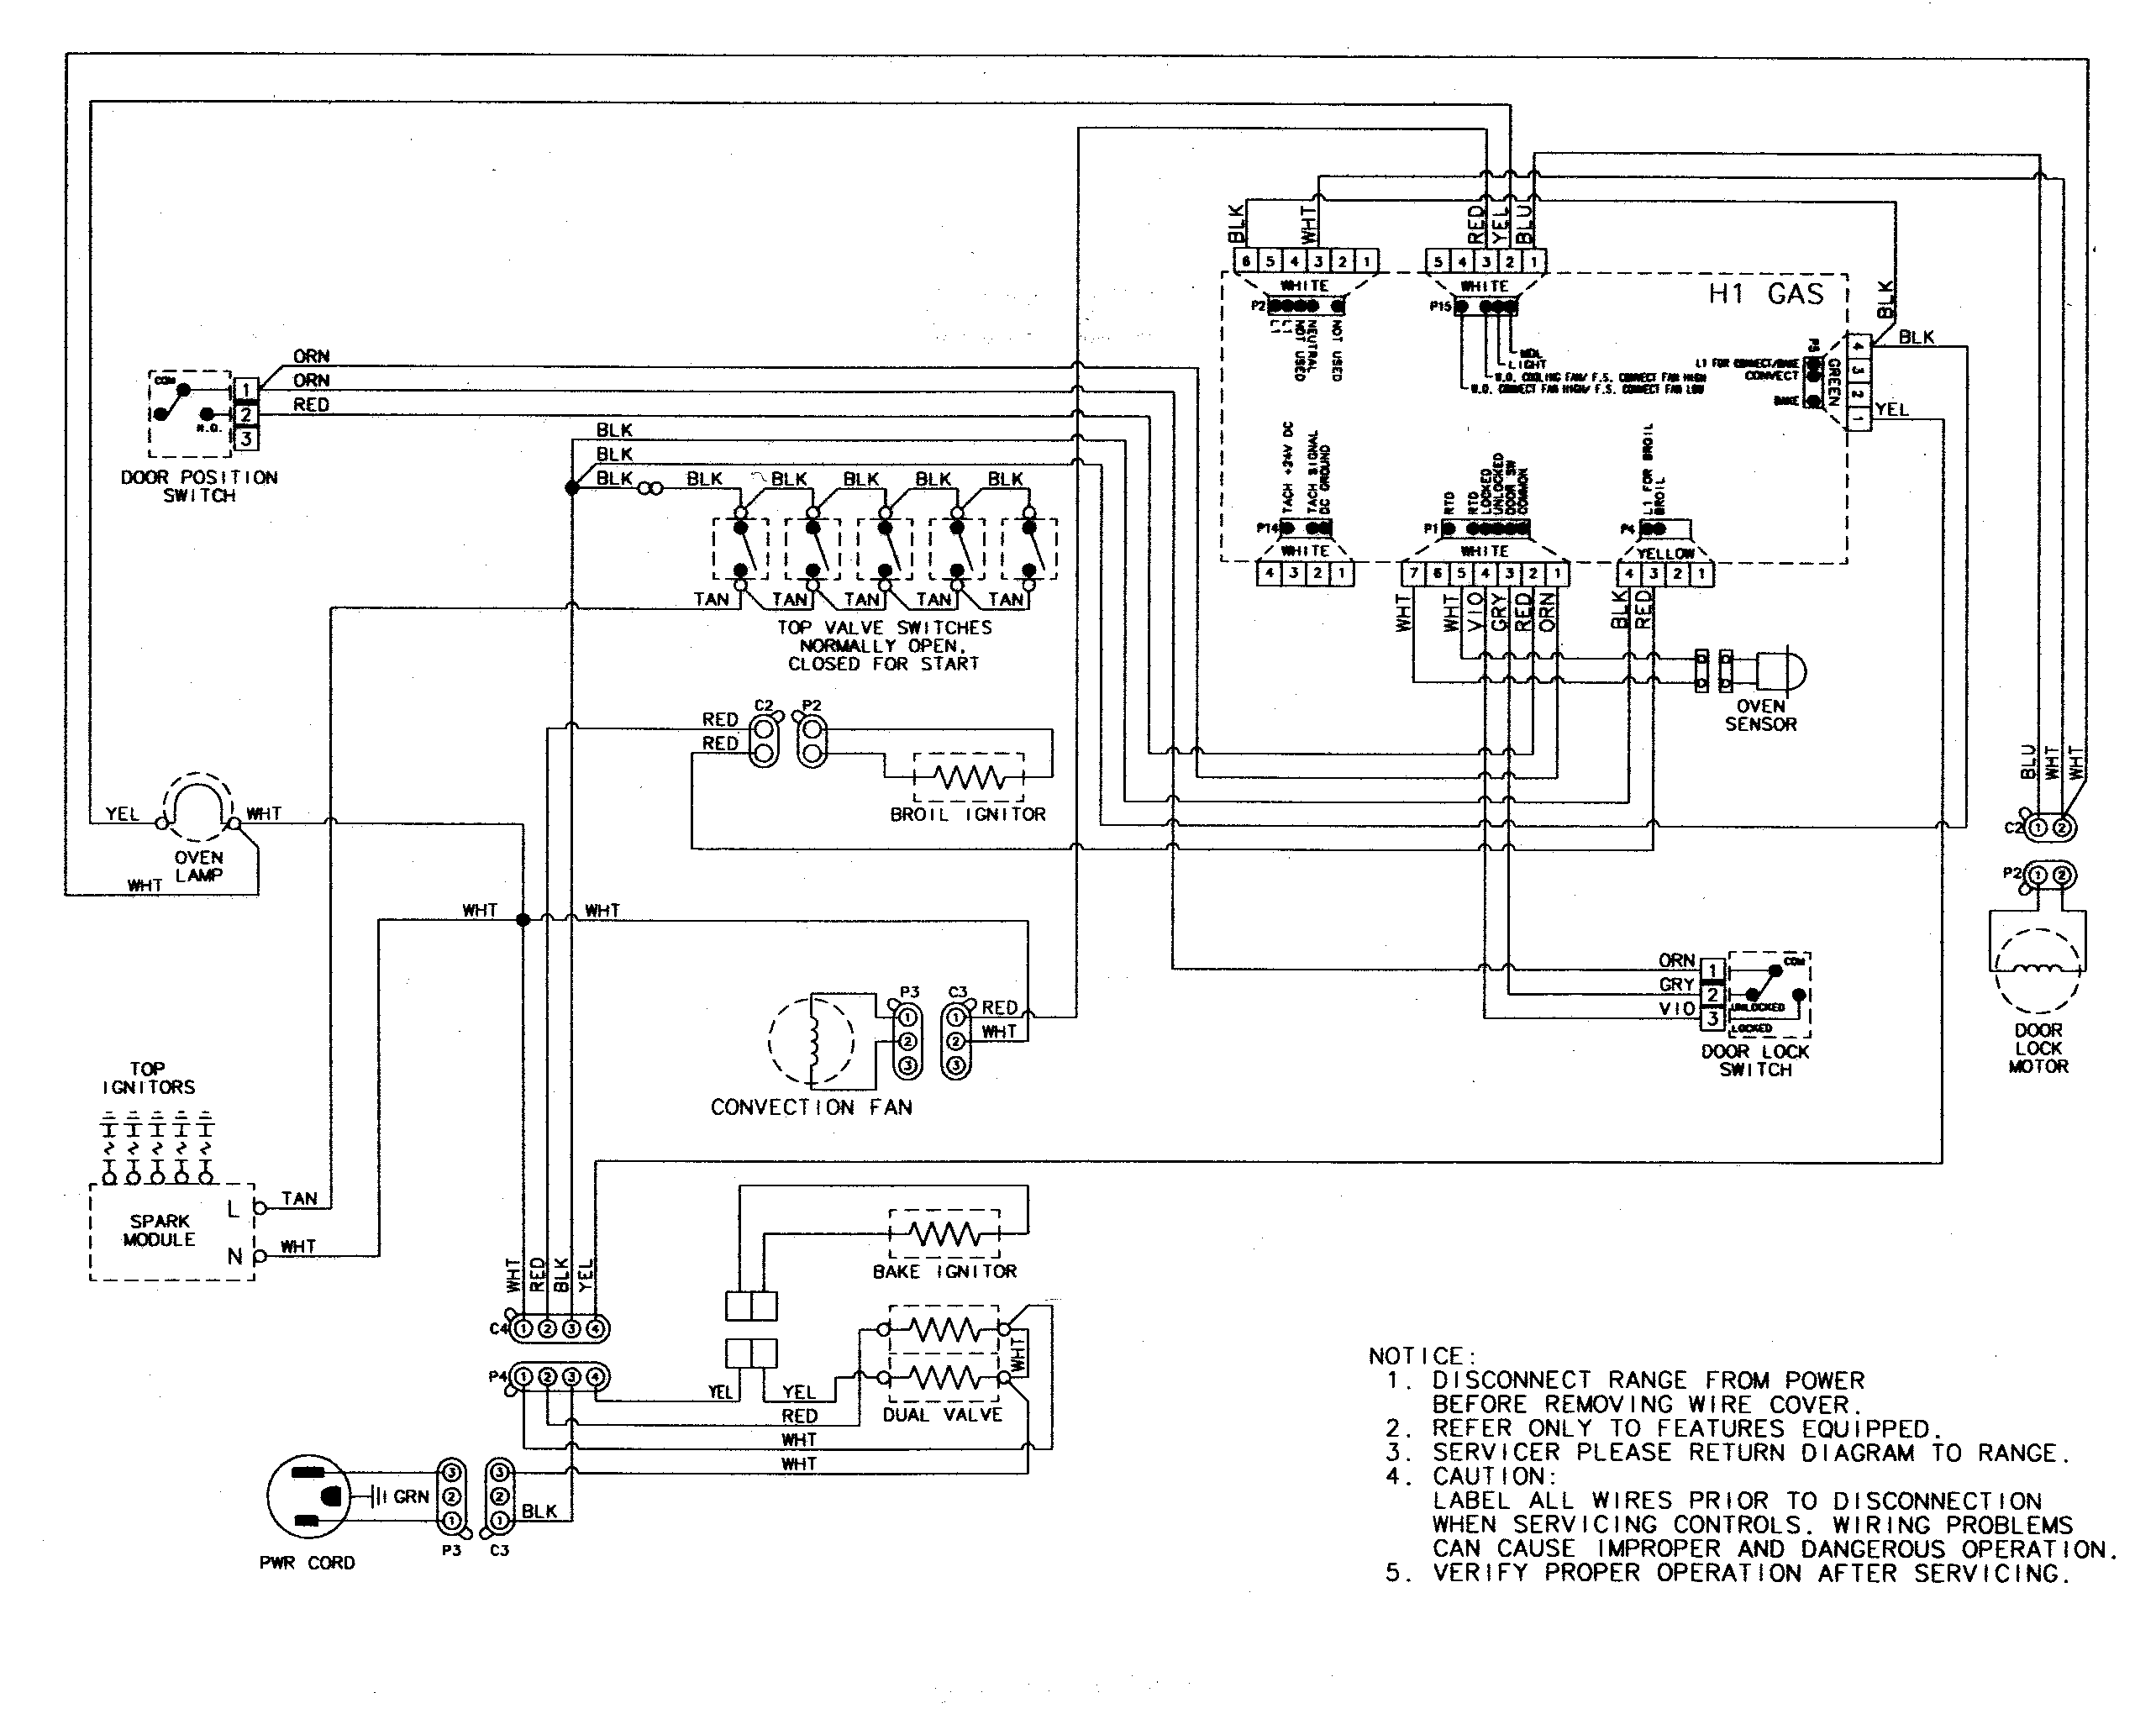 whirlpool electric dryer wiring diagram wiring diagram and roper electric dryer wiring diagram whirlpool